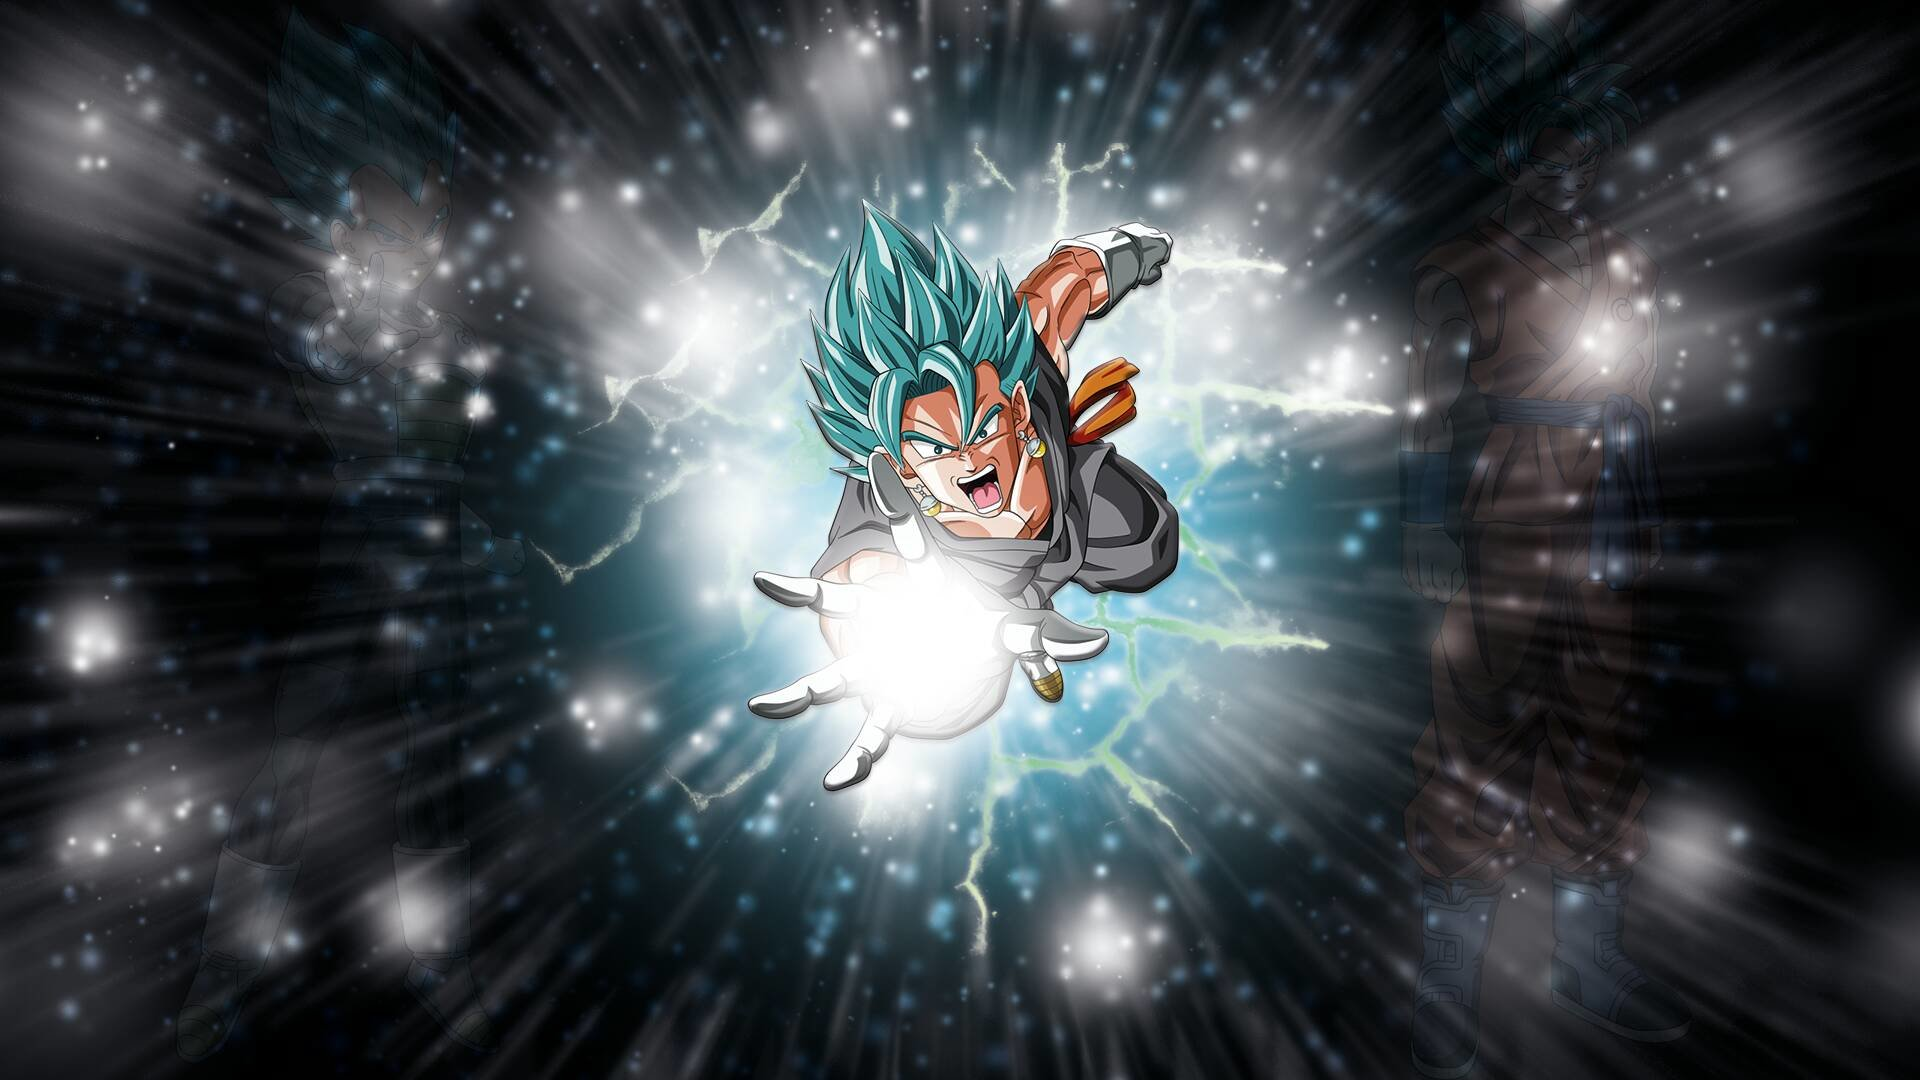 Awesome Dragon Ball Super Free Wallpaper Id 242650 For Full Hd 1080p Pc